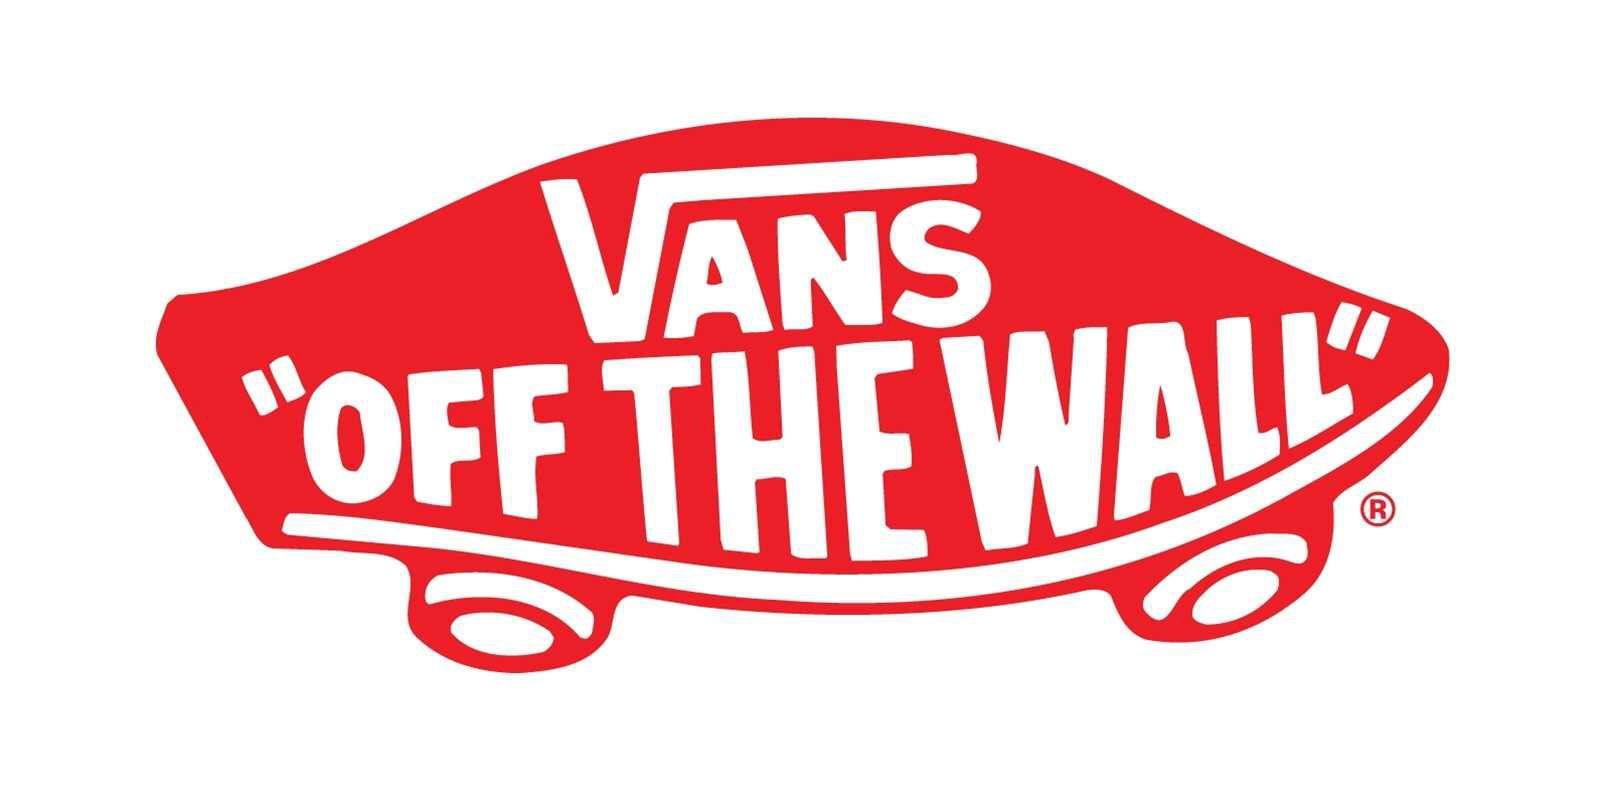 Vans Off The Wall Logo 25 Logos Pinterest Stickers Vans And